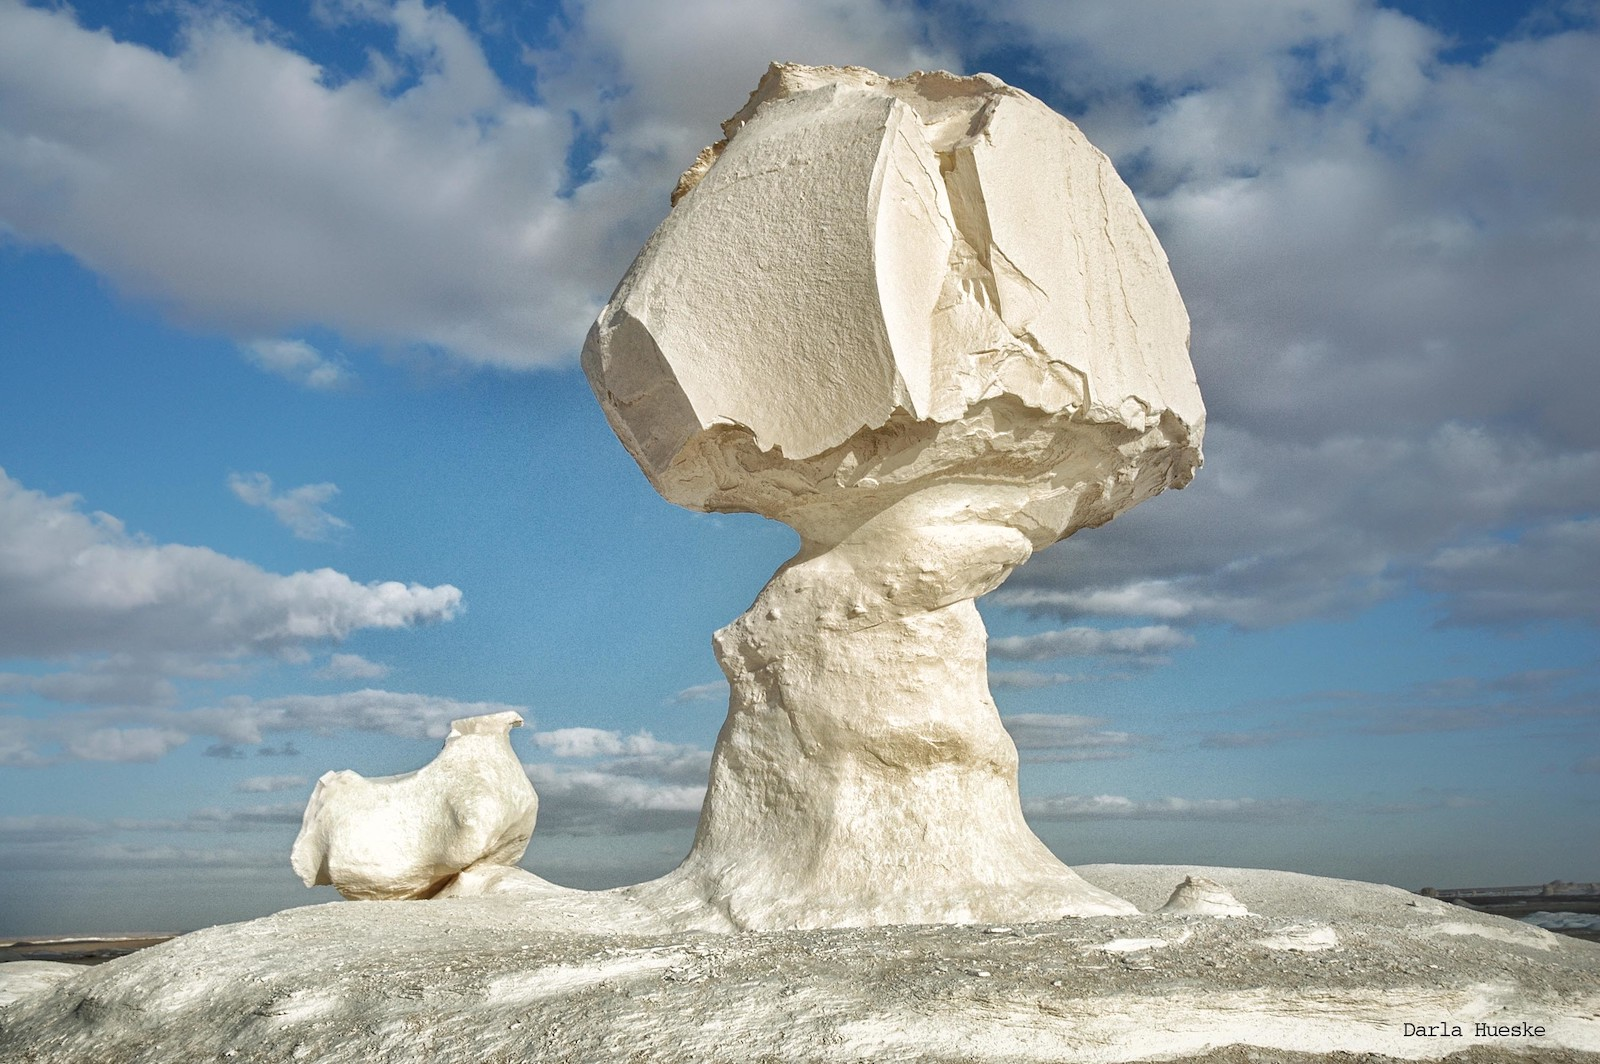 Chicken and Mushroom, White Desert, Egypt